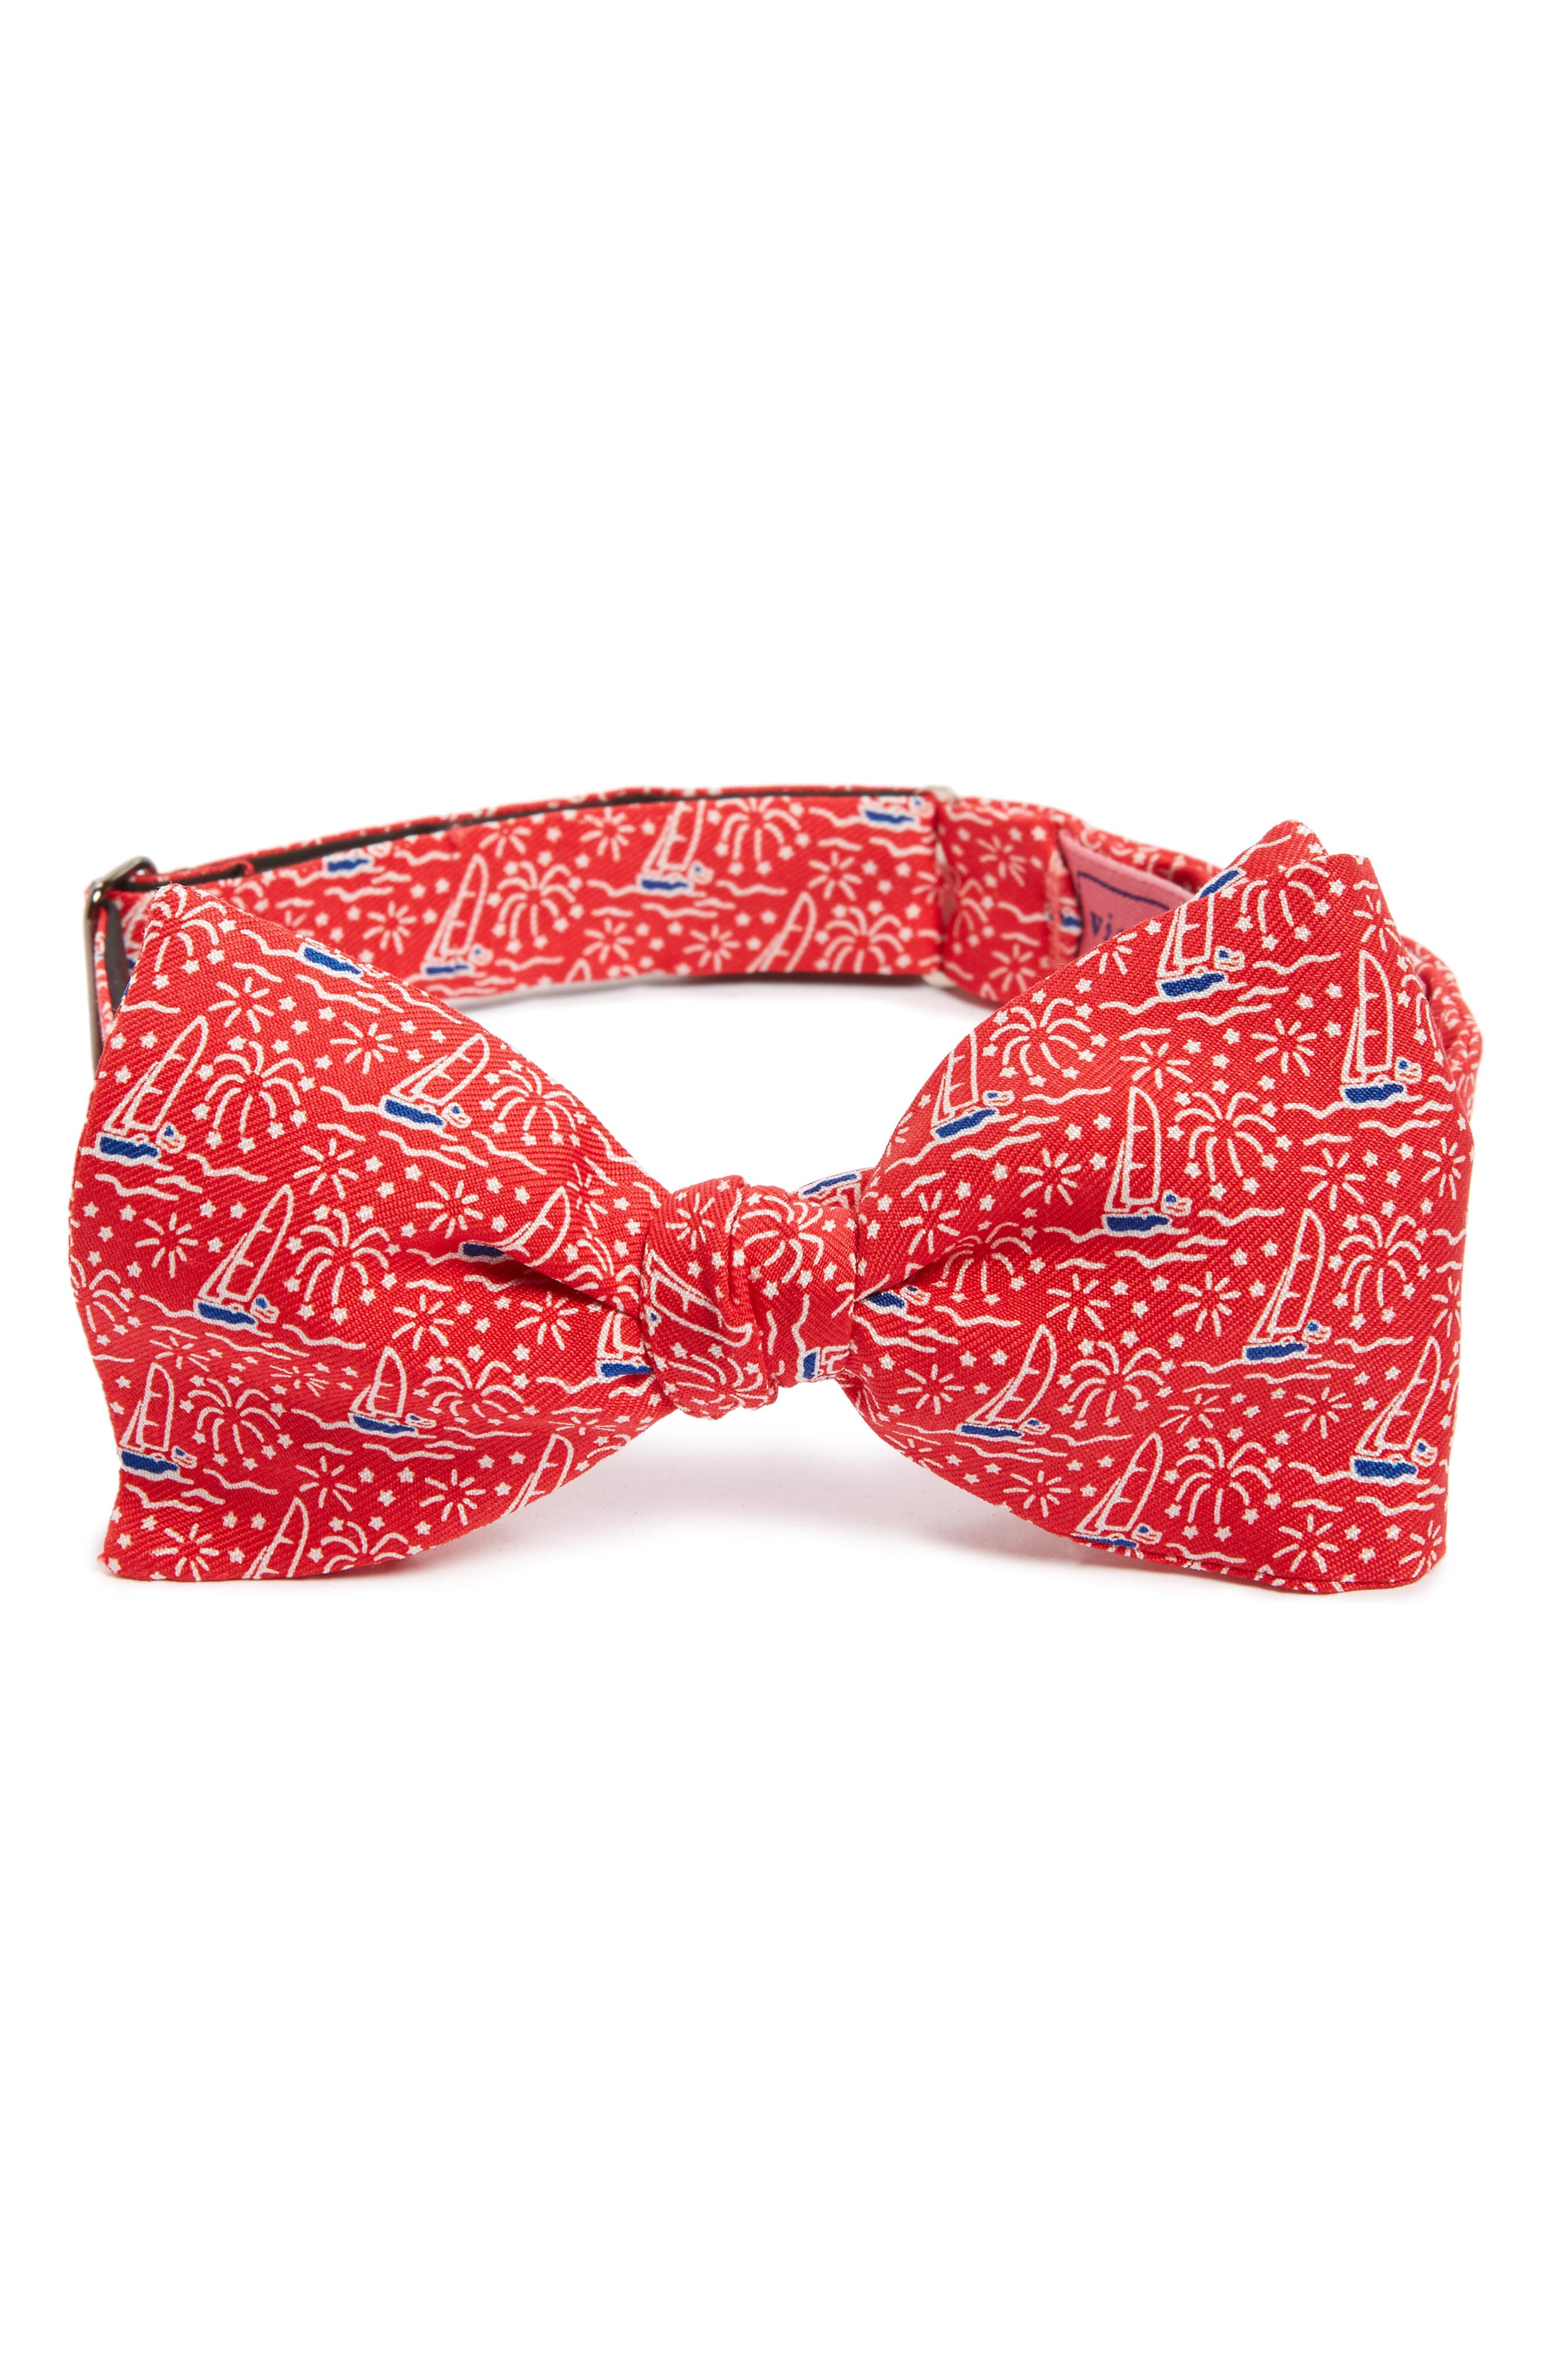 Sailing Bow Tie,                         Main,                         color, Red